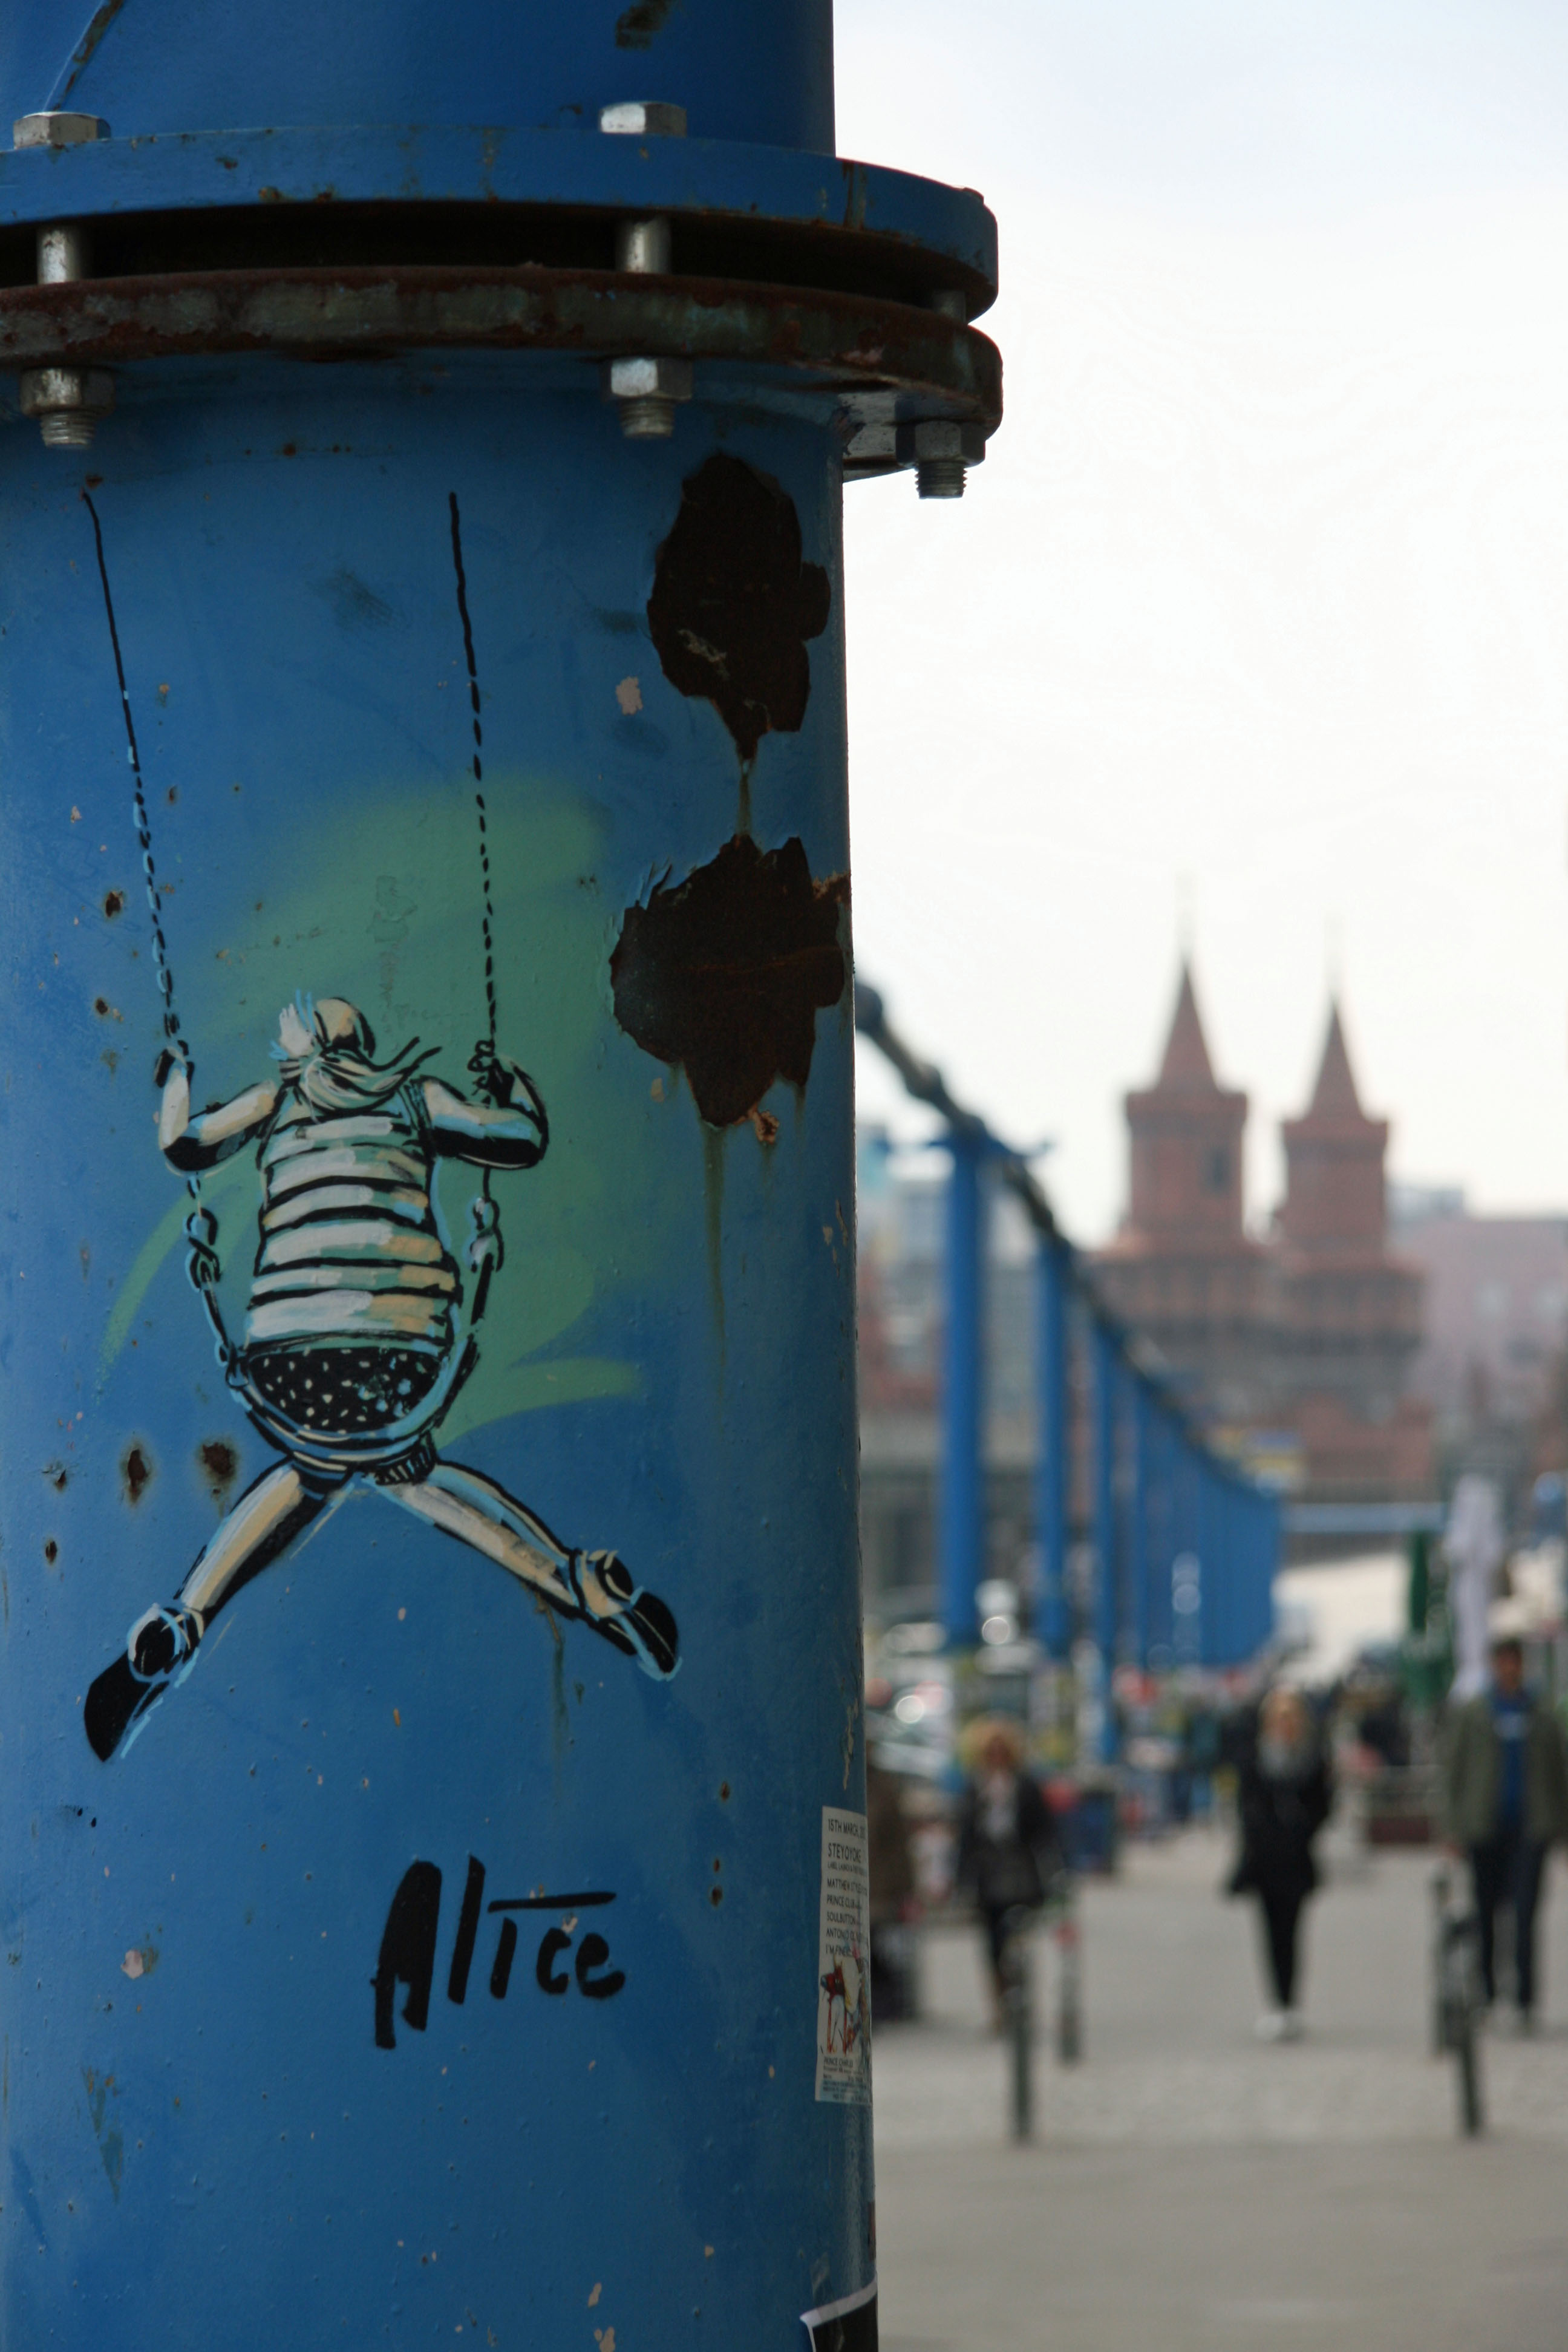 Girl on a Swing Too: Street Art by AliCé (Alice Pasquini) in Berlin